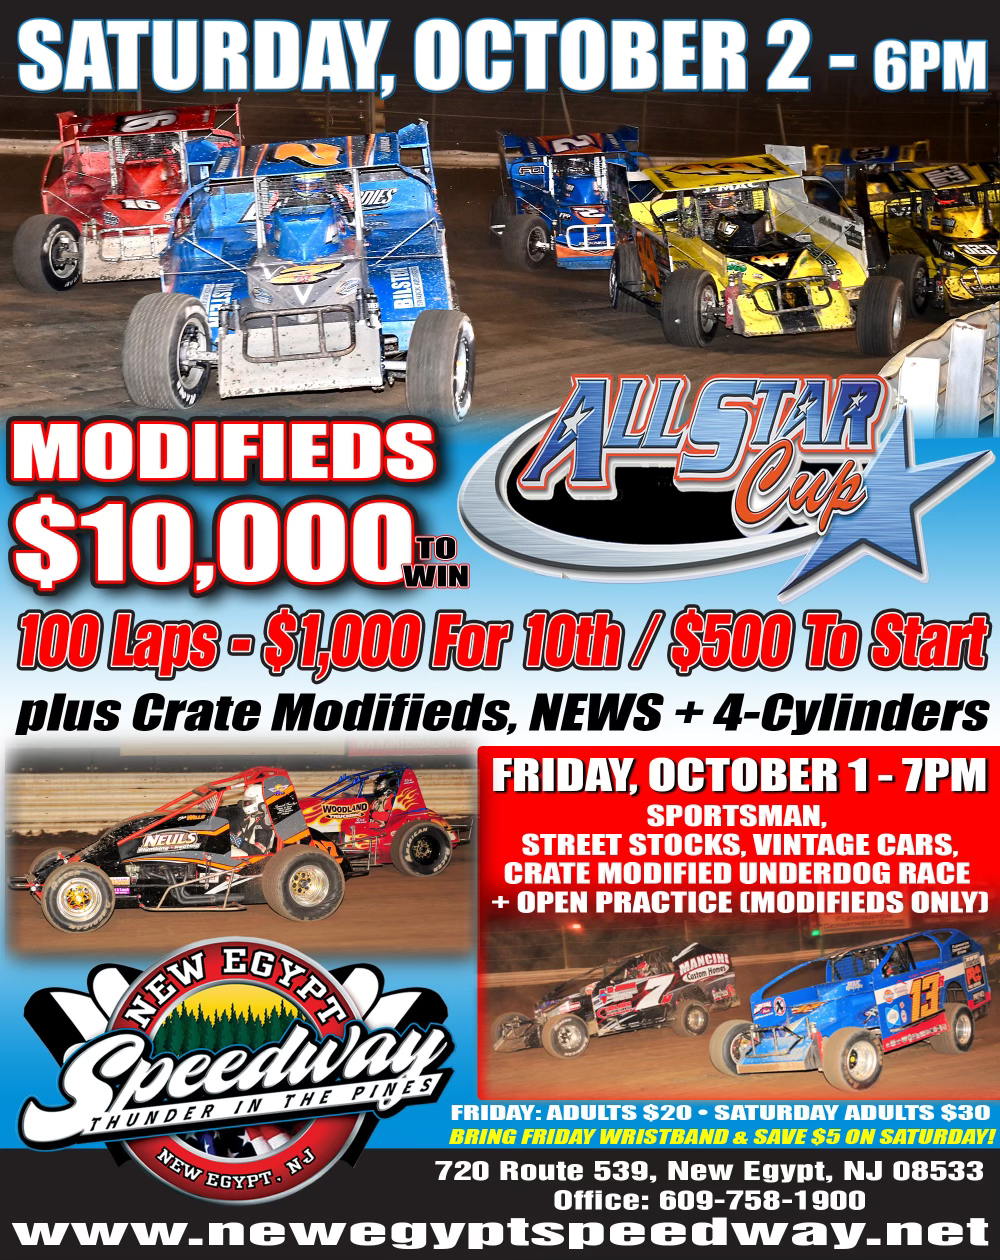 All Star Cup Shootout 100: Modifieds (100 Laps), Crate Modifieds, NEWS + 4-Cylinders